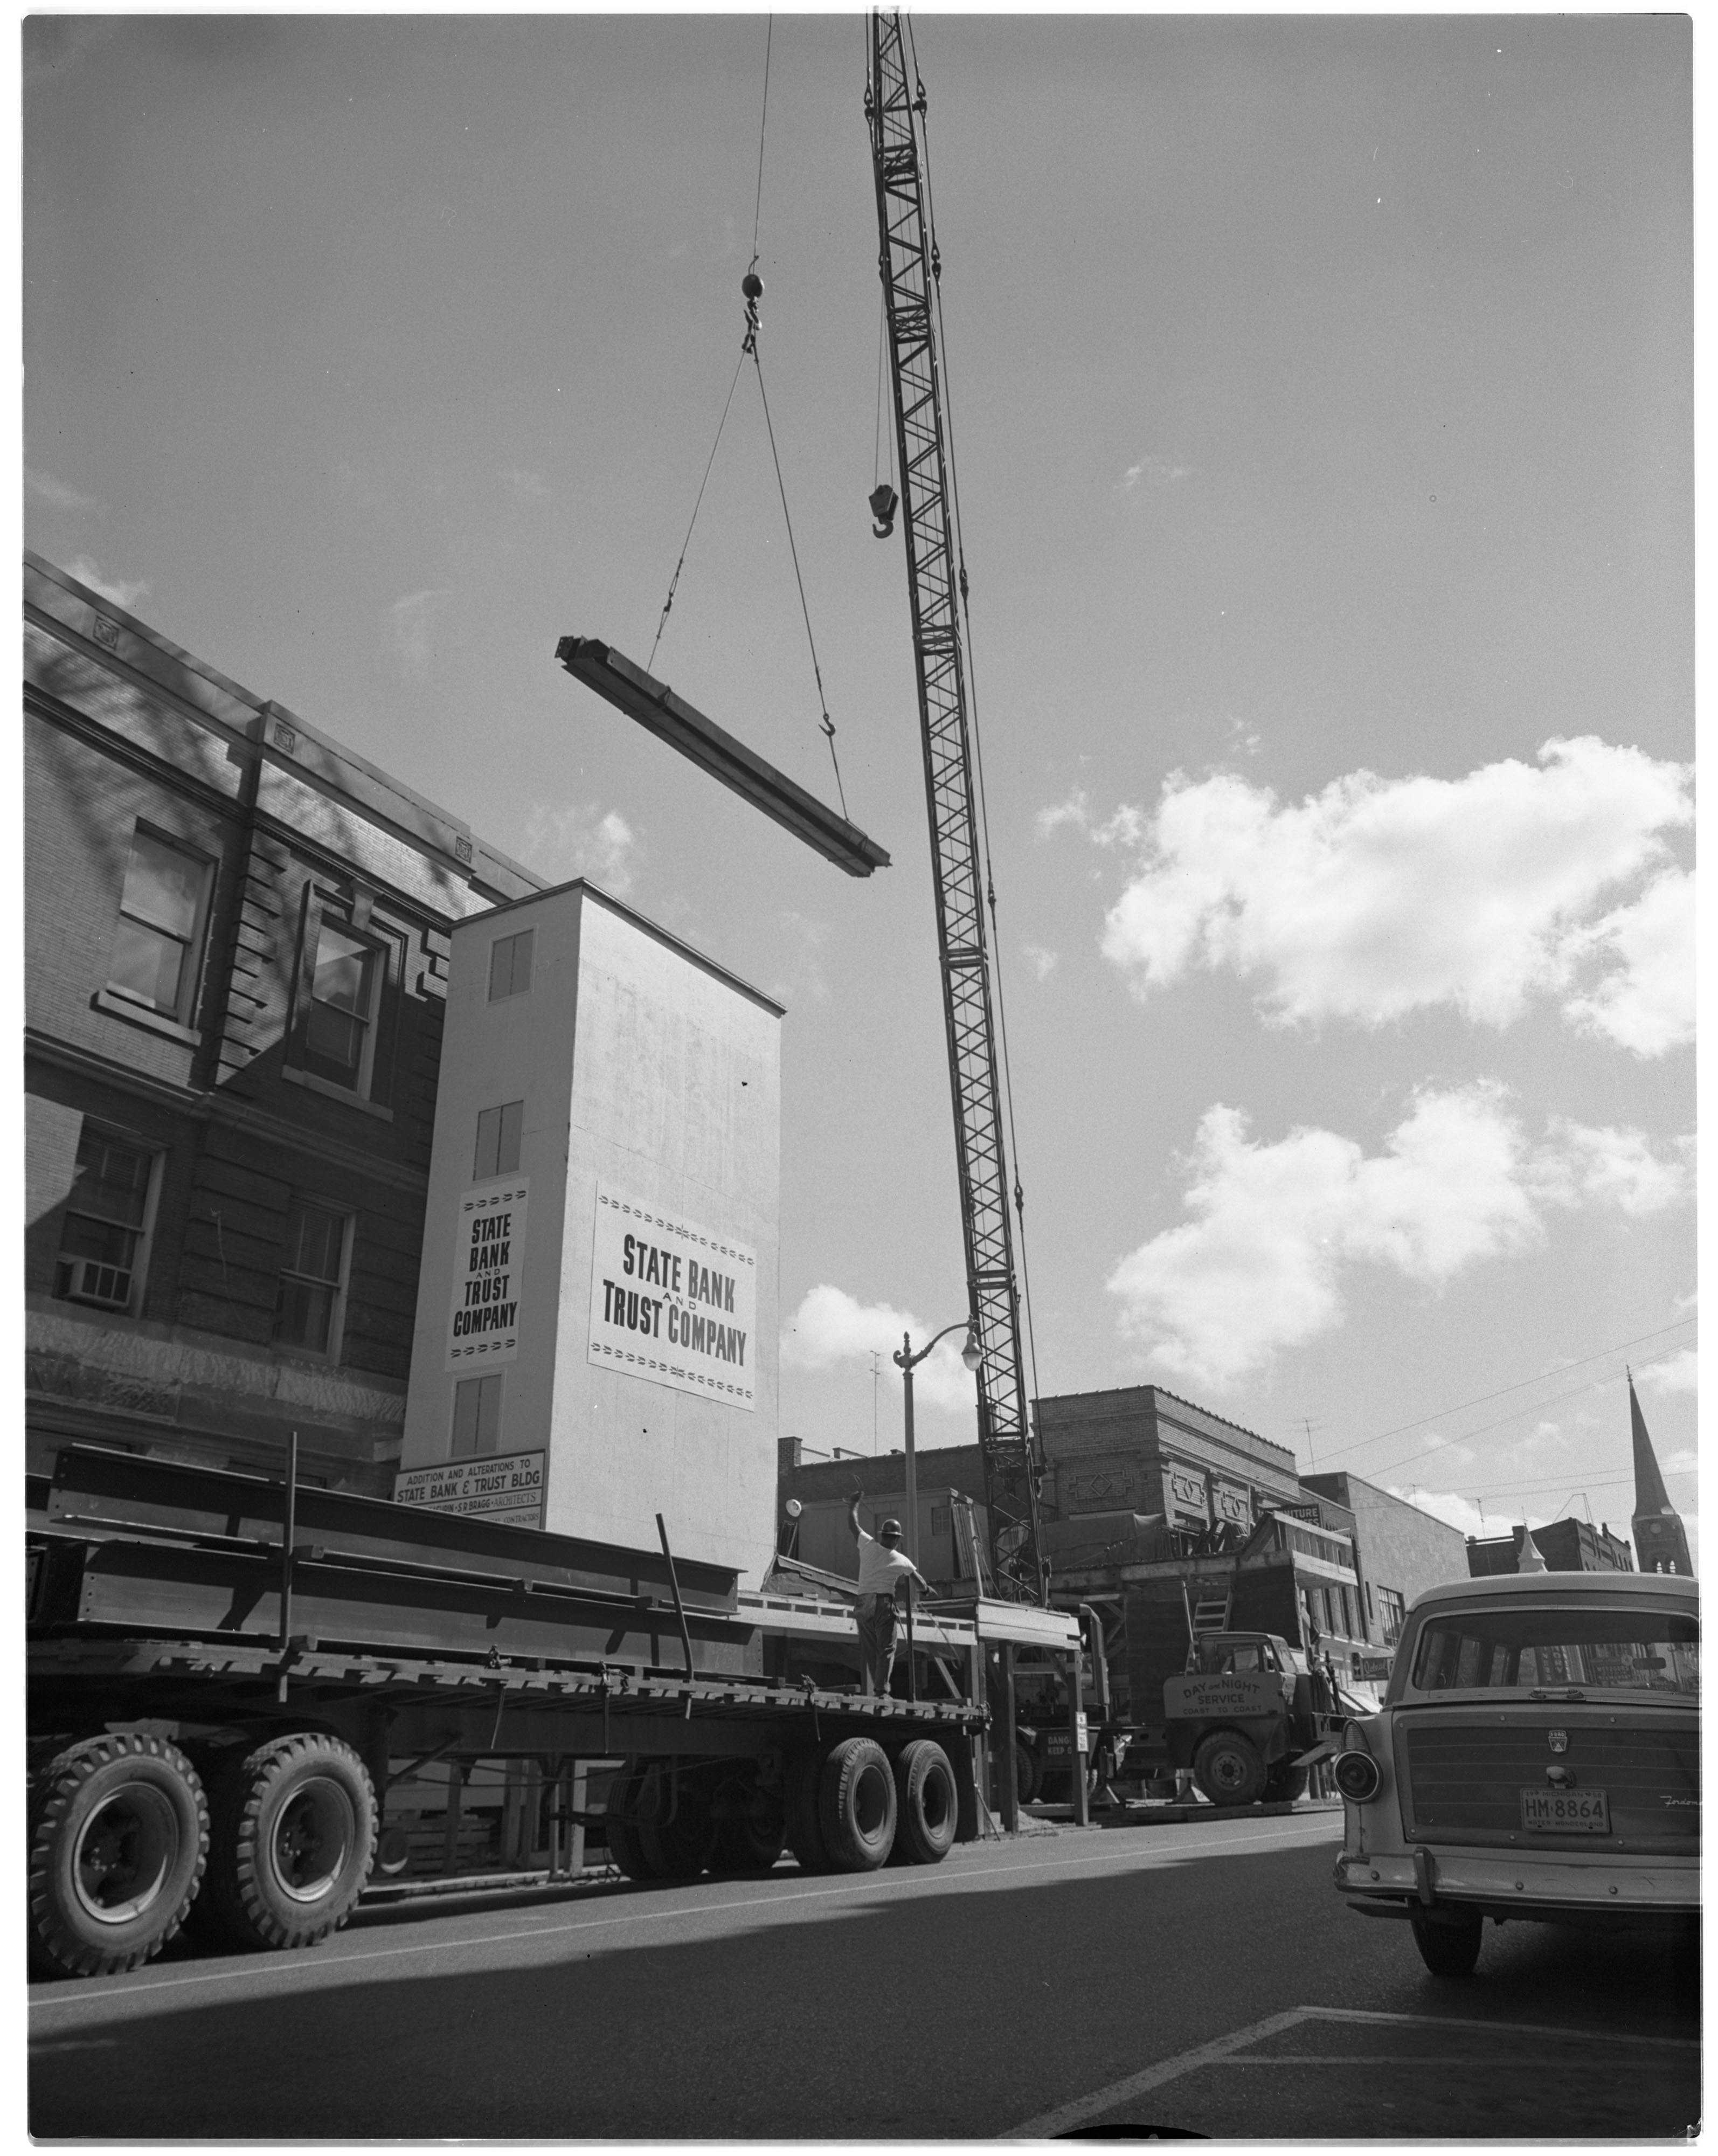 Construction Crane for Addition to State Bank and Trust Company, August 1958 image